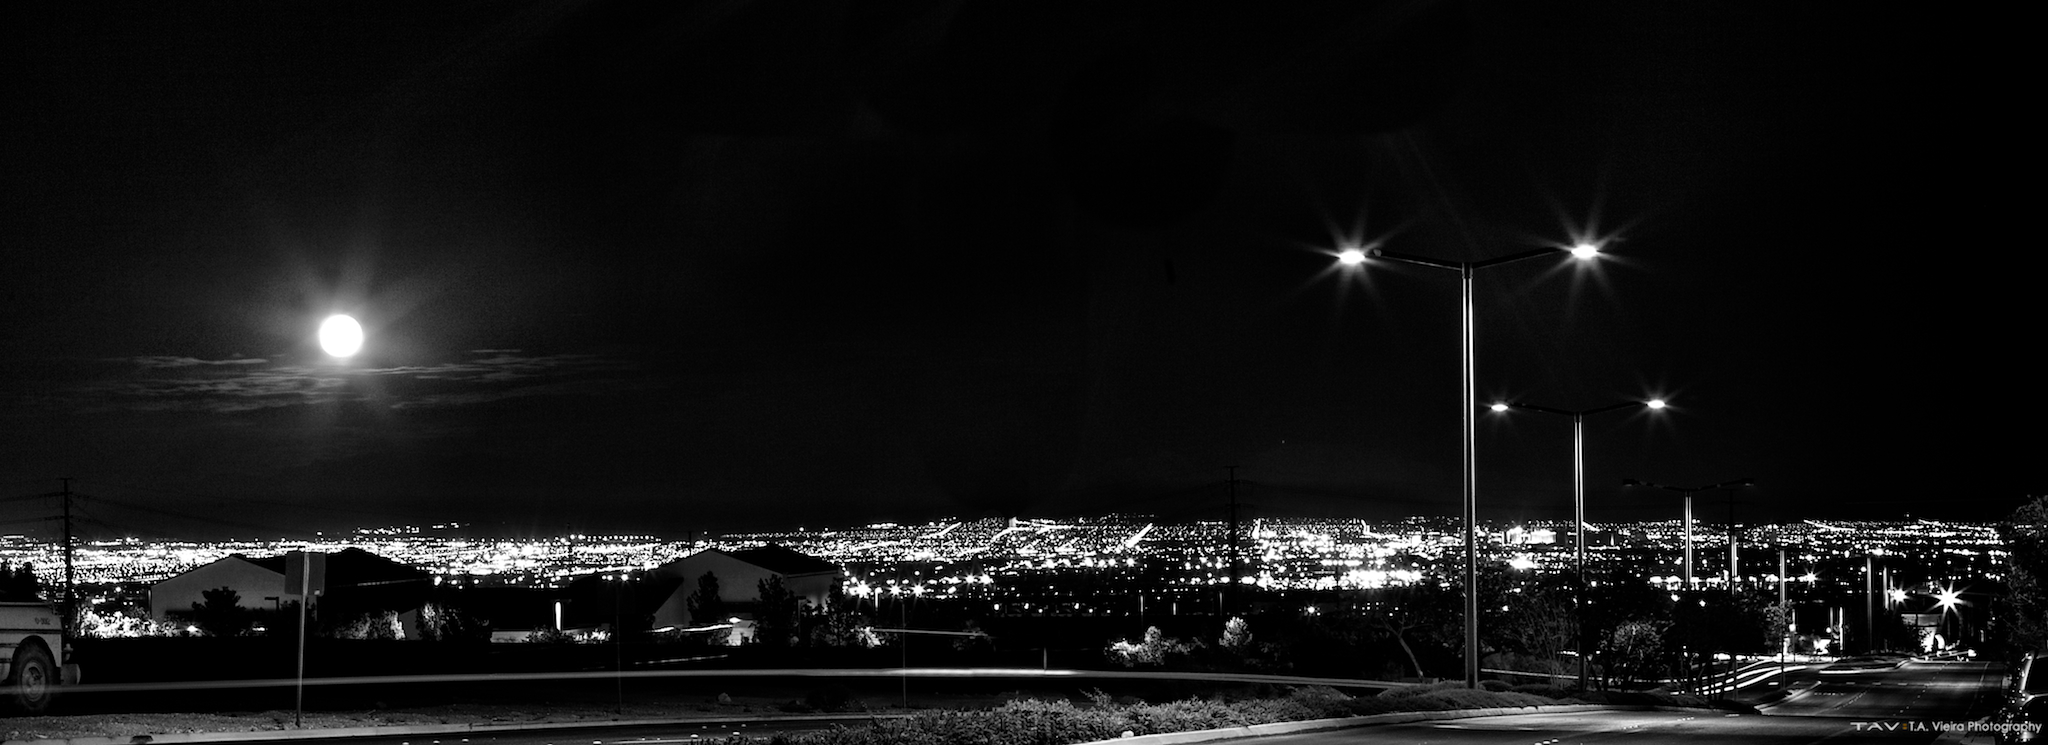 night-light-moon-bw-crop-2